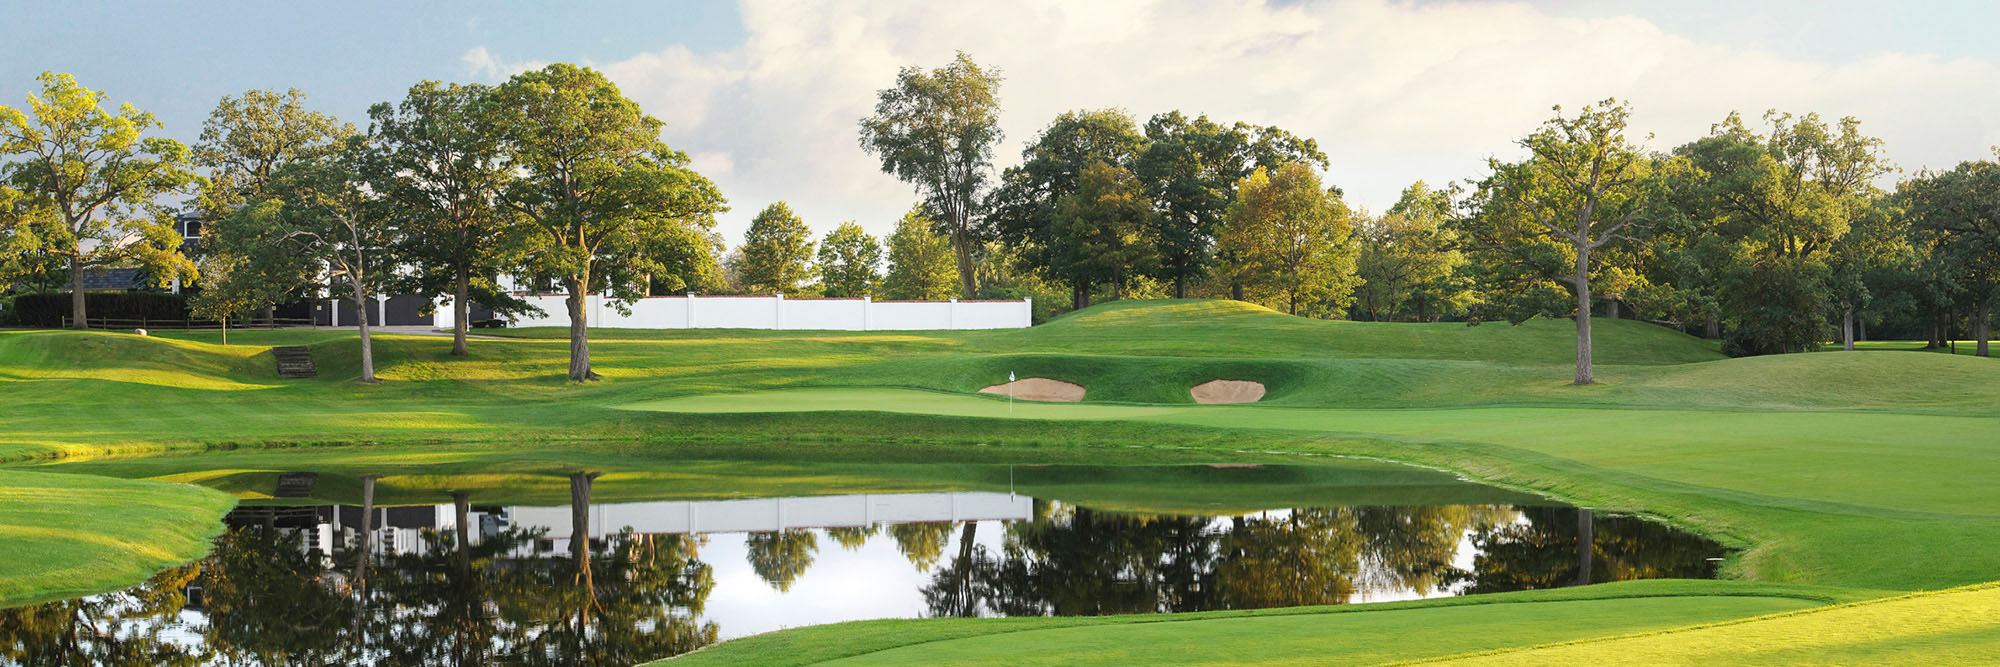 Golf Course Image - Cog Hill 4 No. 19